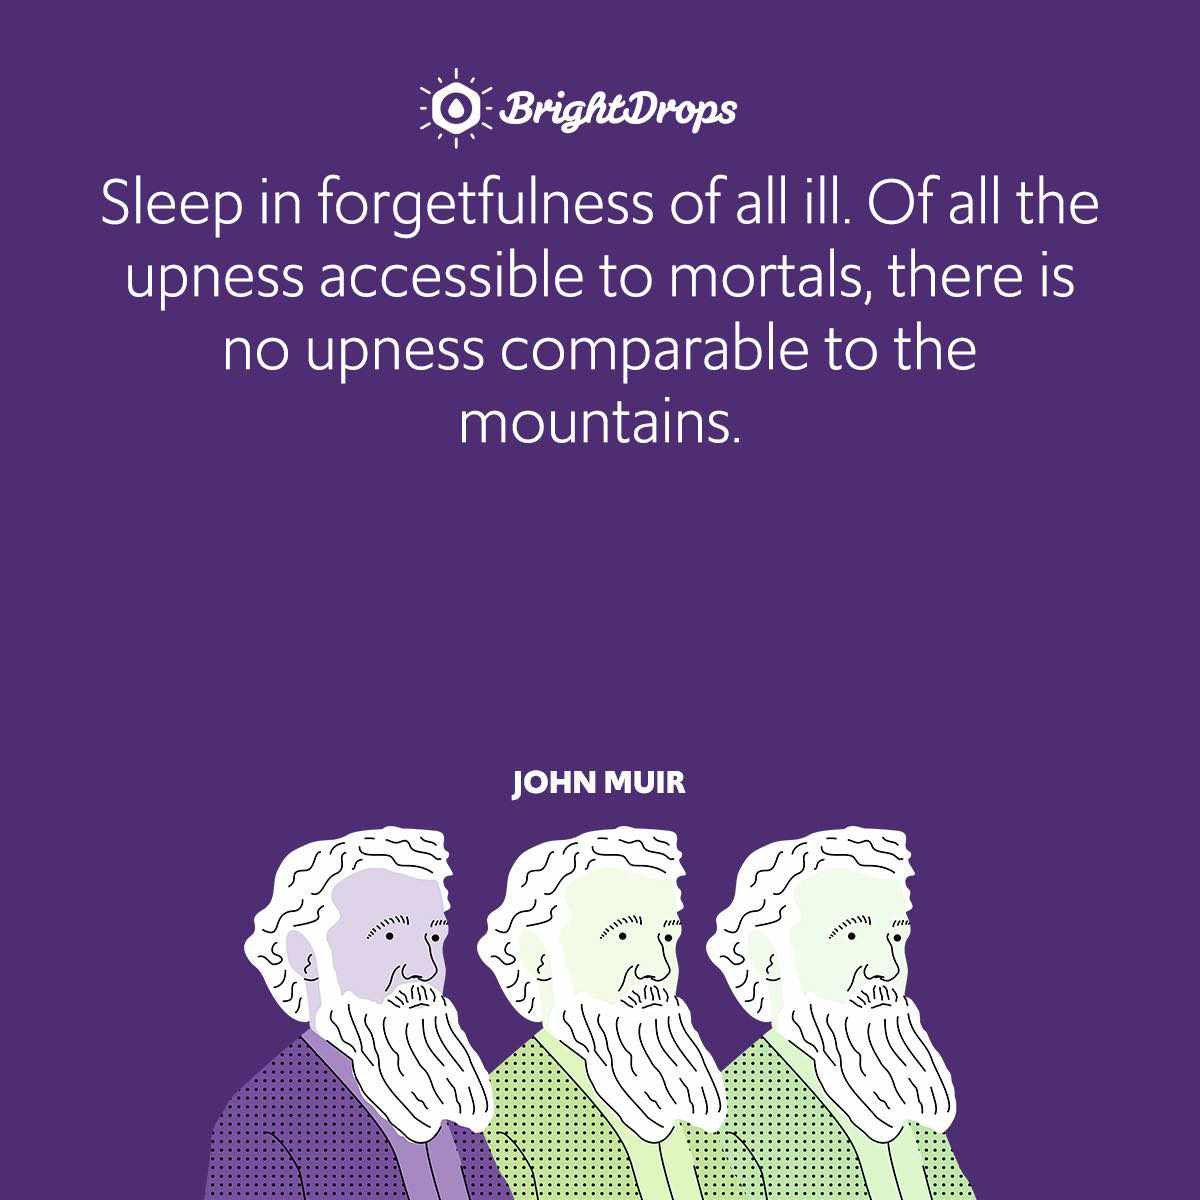 Sleep in forgetfulness of all ill. Of all the upness accessible to mortals, there is no upness comparable to the mountains.